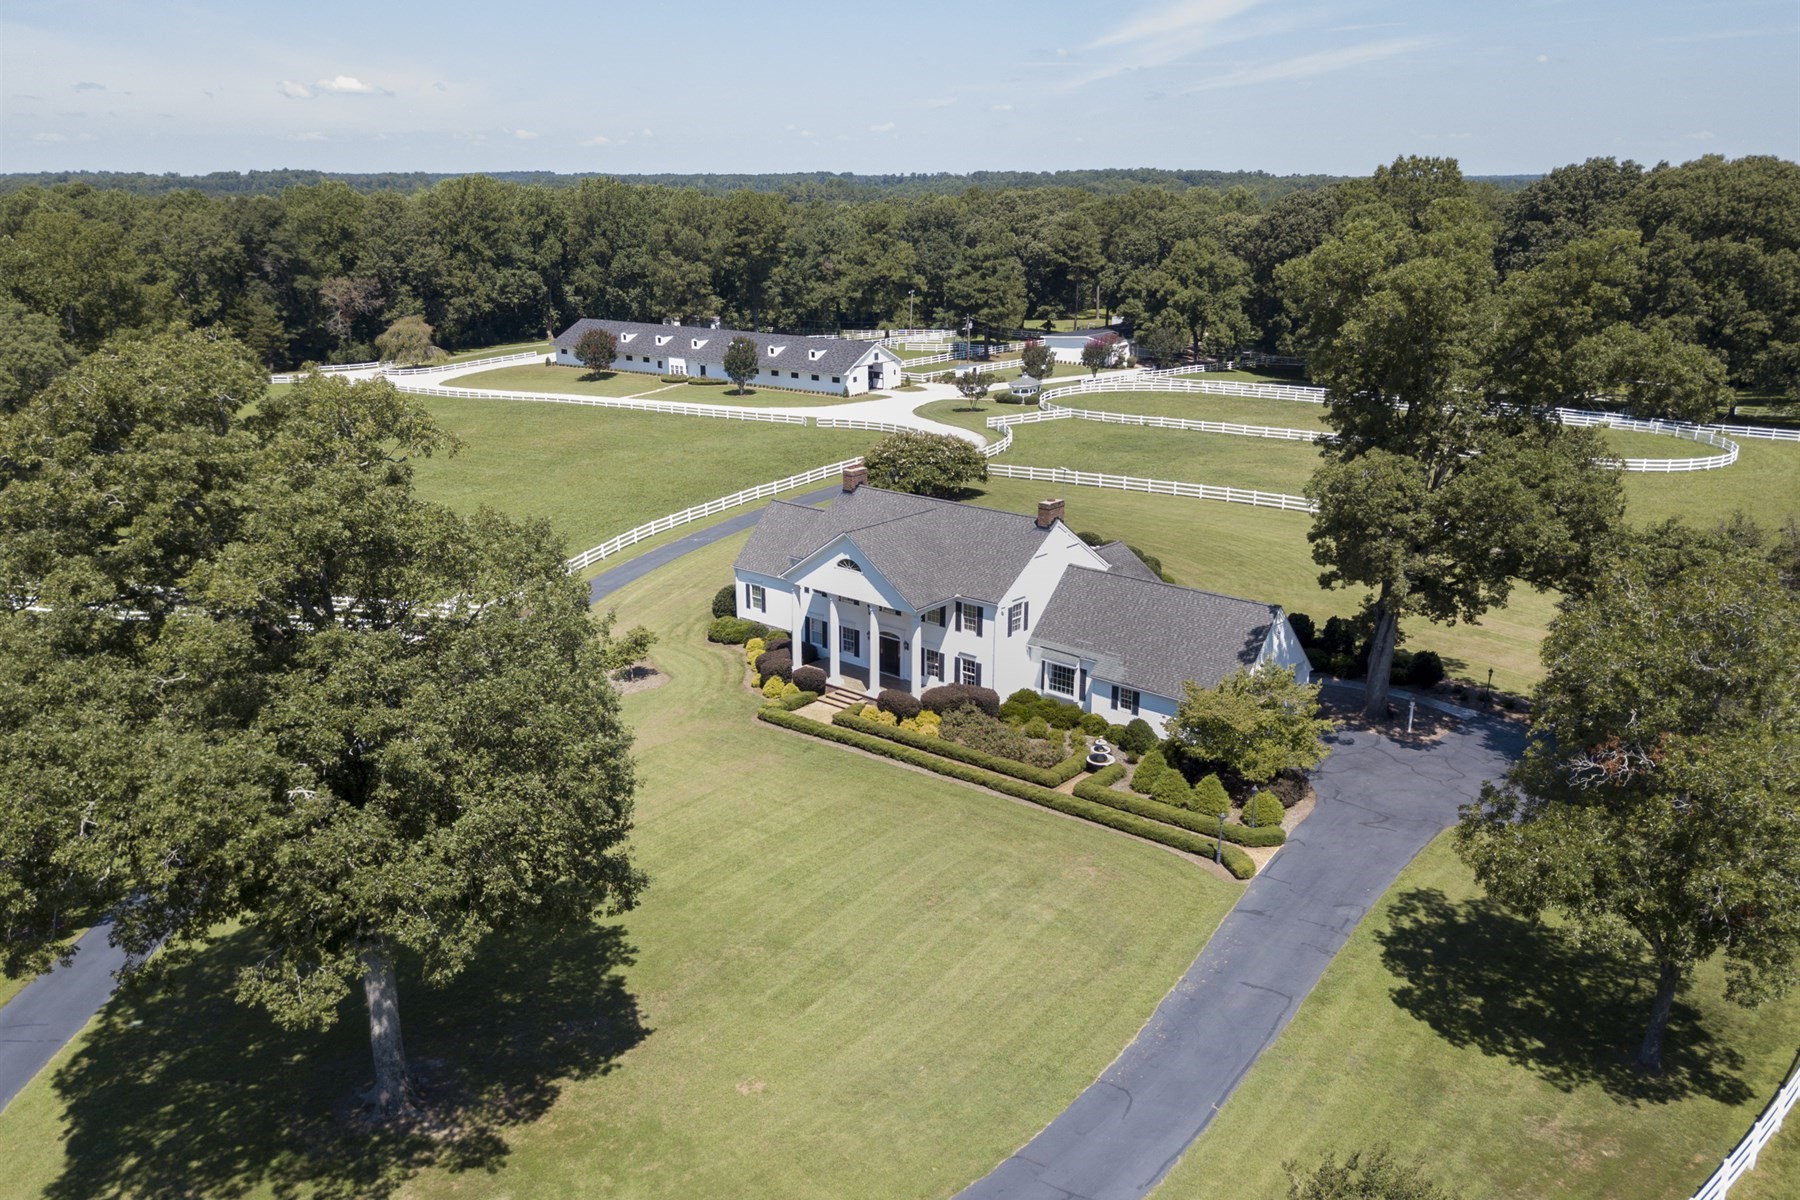 Ferme / Ranch / Plantation pour l Vente à Highland Springs Farm 8446 Seven Paths Road Spring Hope, Carolina Du Nord, 27882 États-UnisDans/Autour: Cary, Chapel Hill, Durham, Raleigh